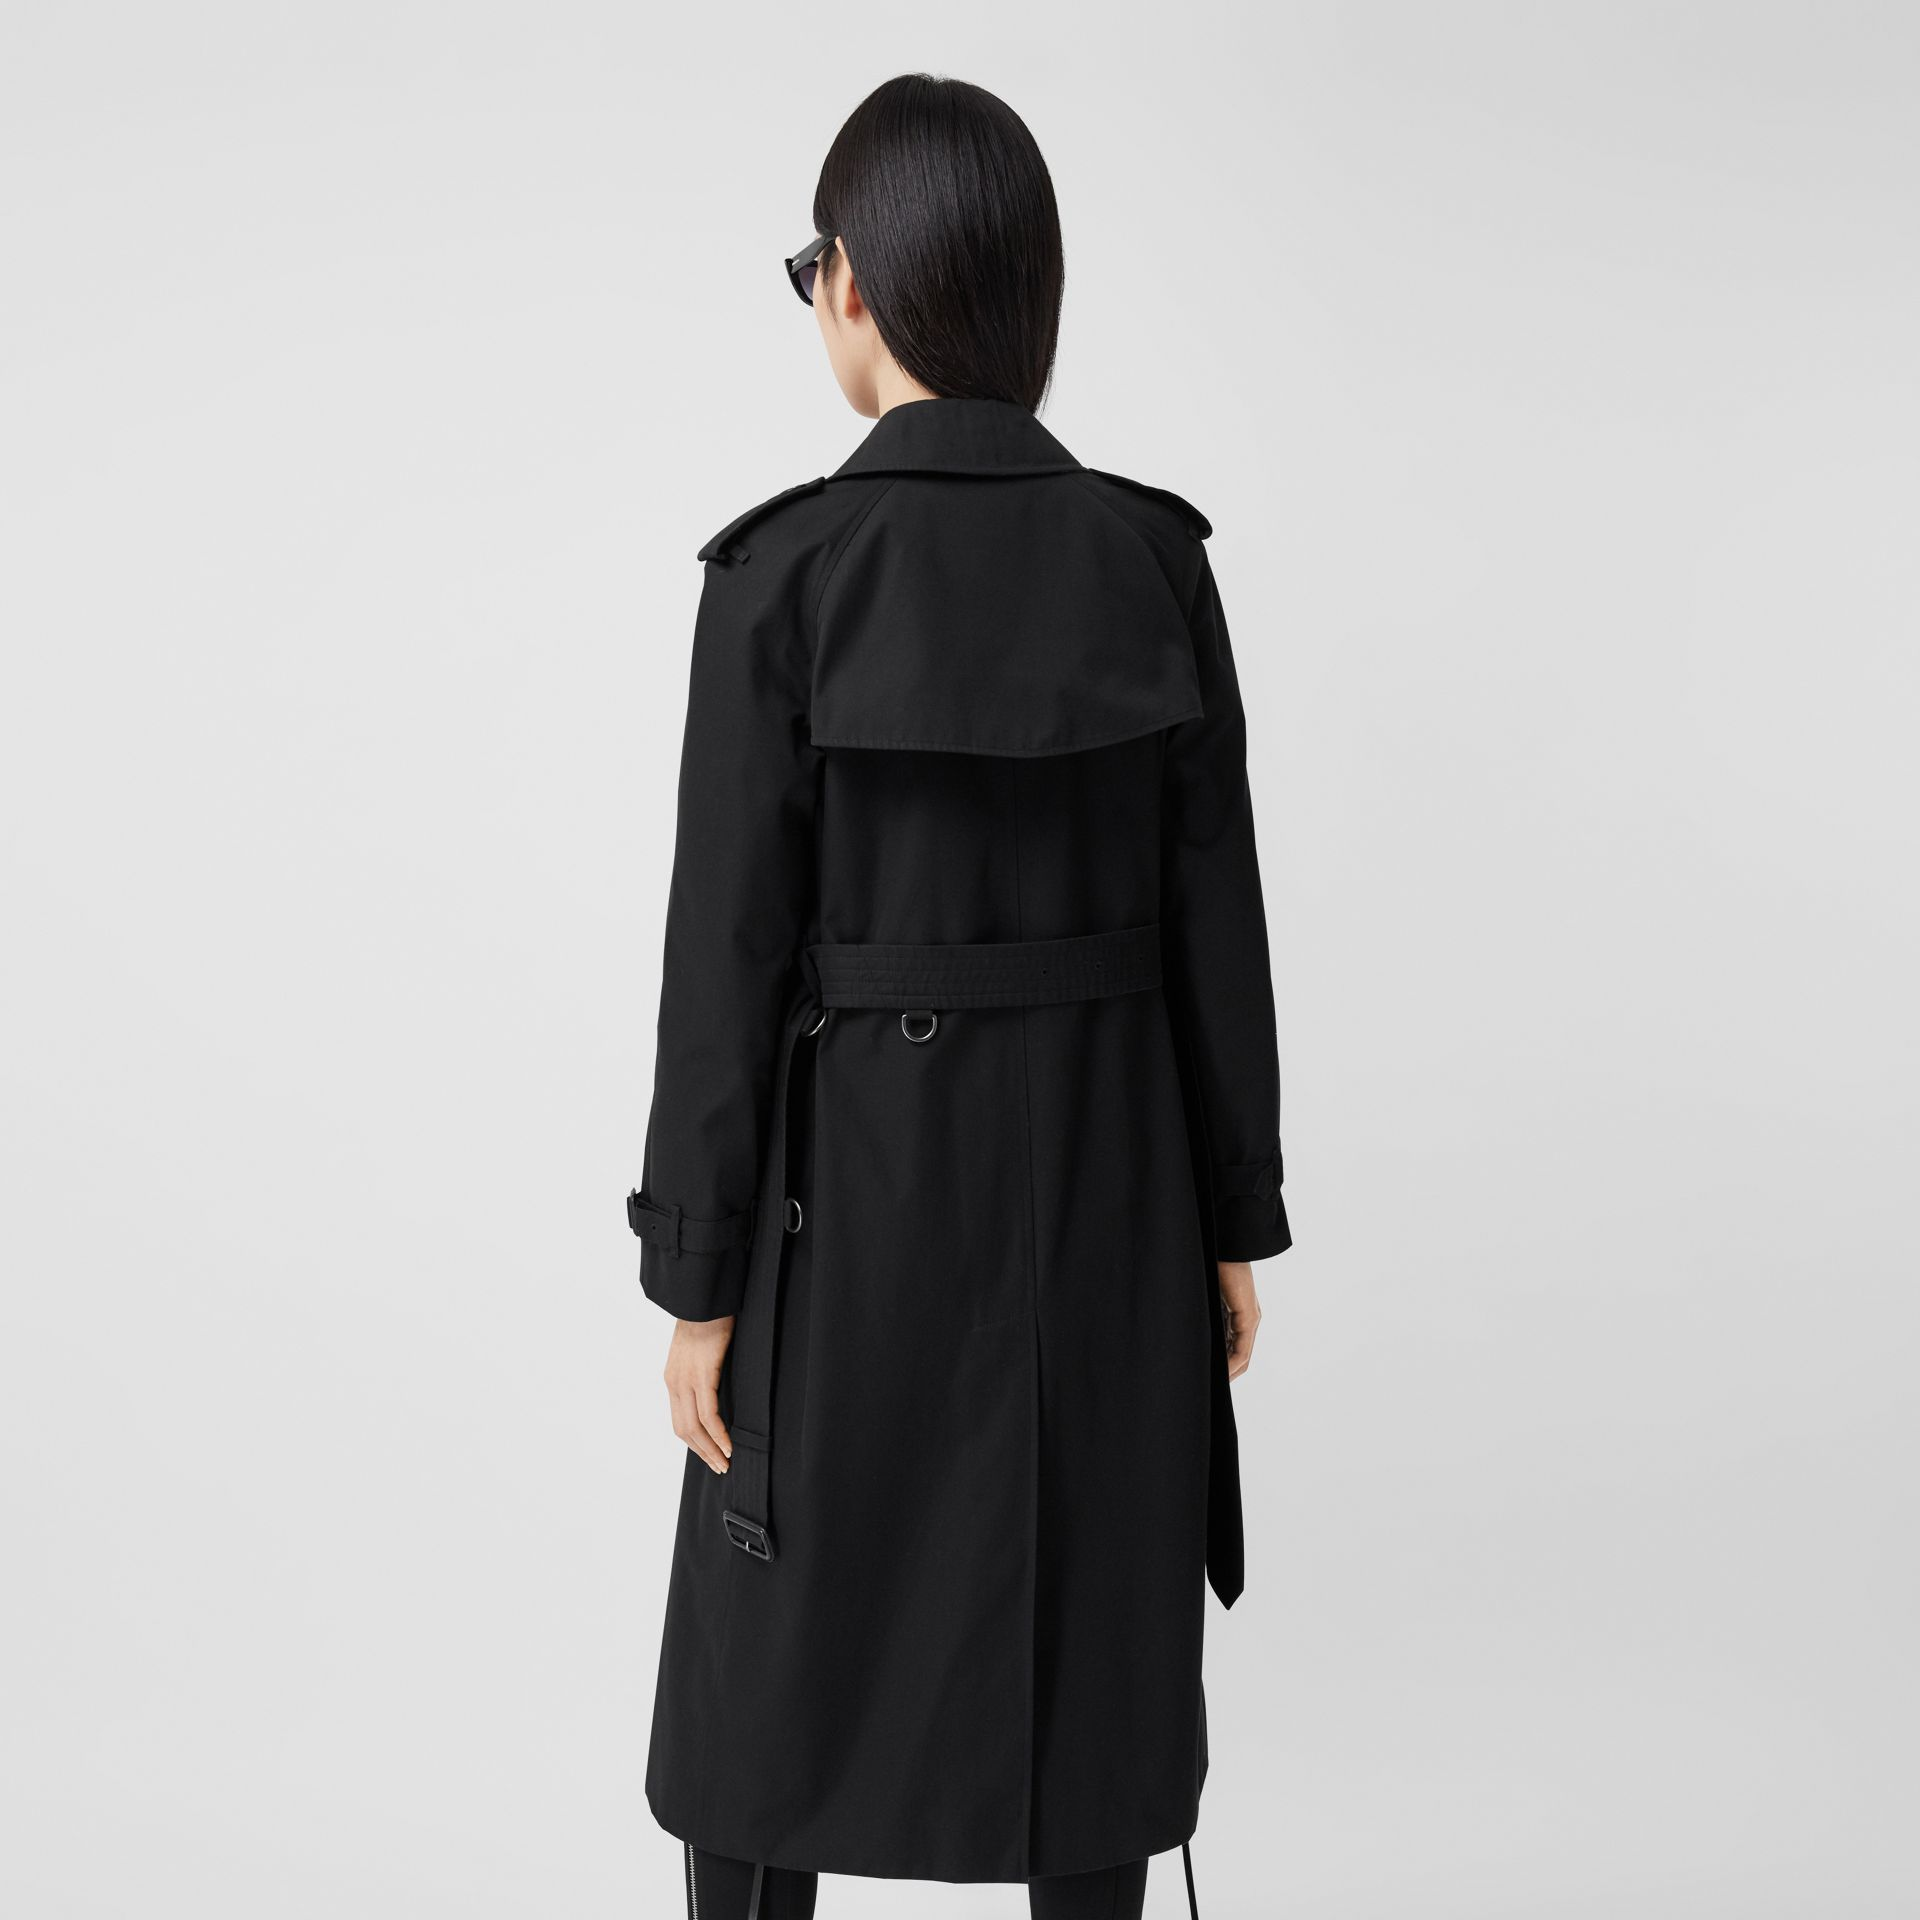 Langer Heritage-Trenchcoat in Waterloo-Passform (Schwarz) - Damen | Burberry - Galerie-Bild 2